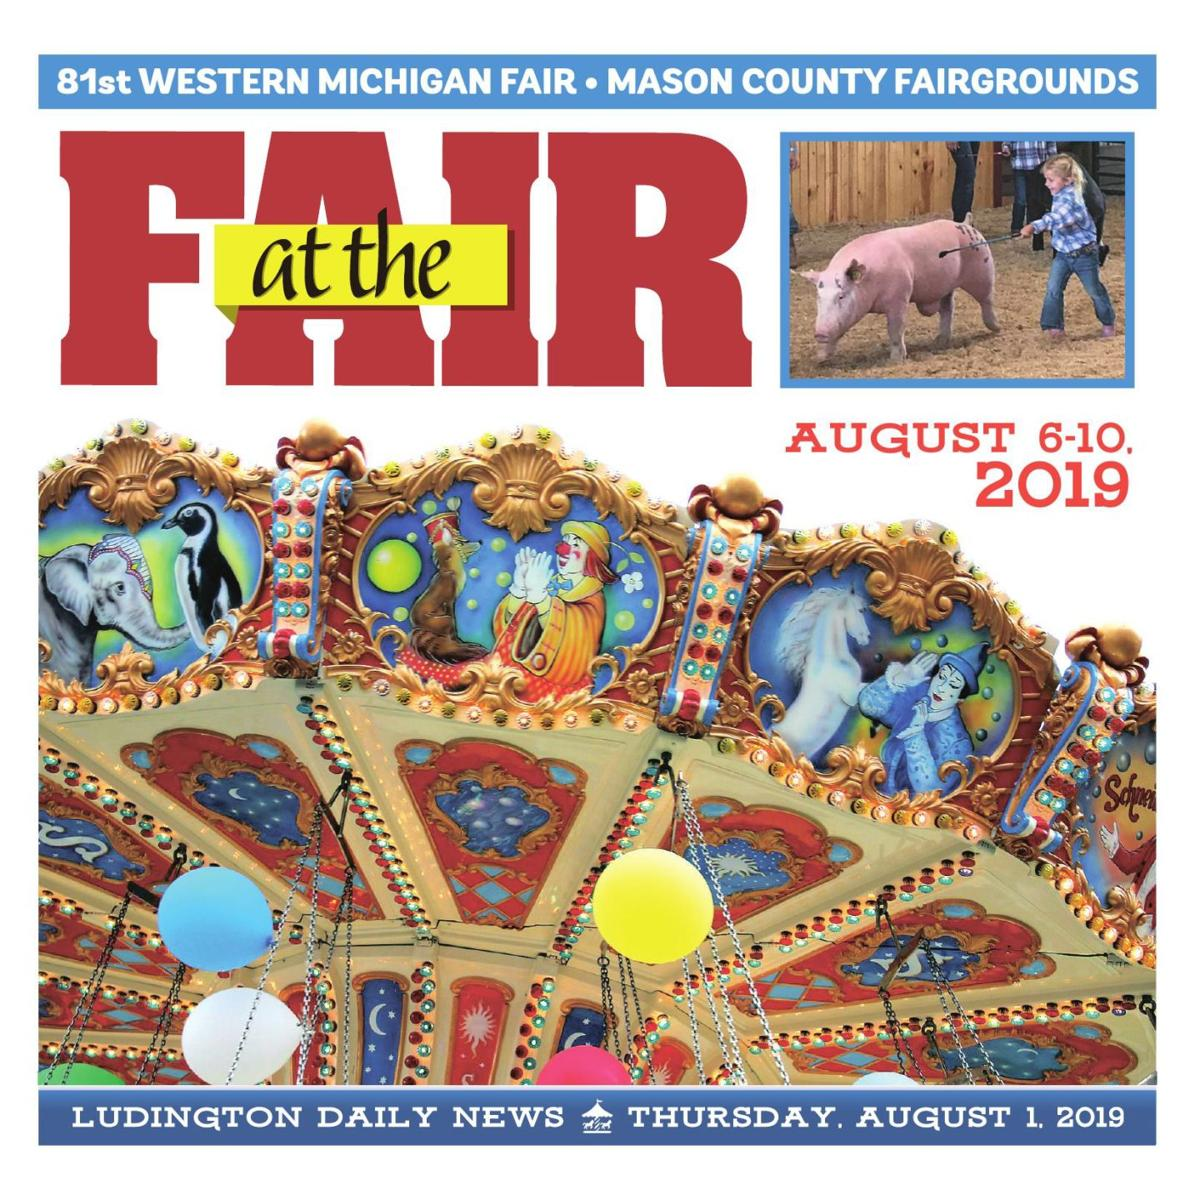 81st Western Michigan Fair